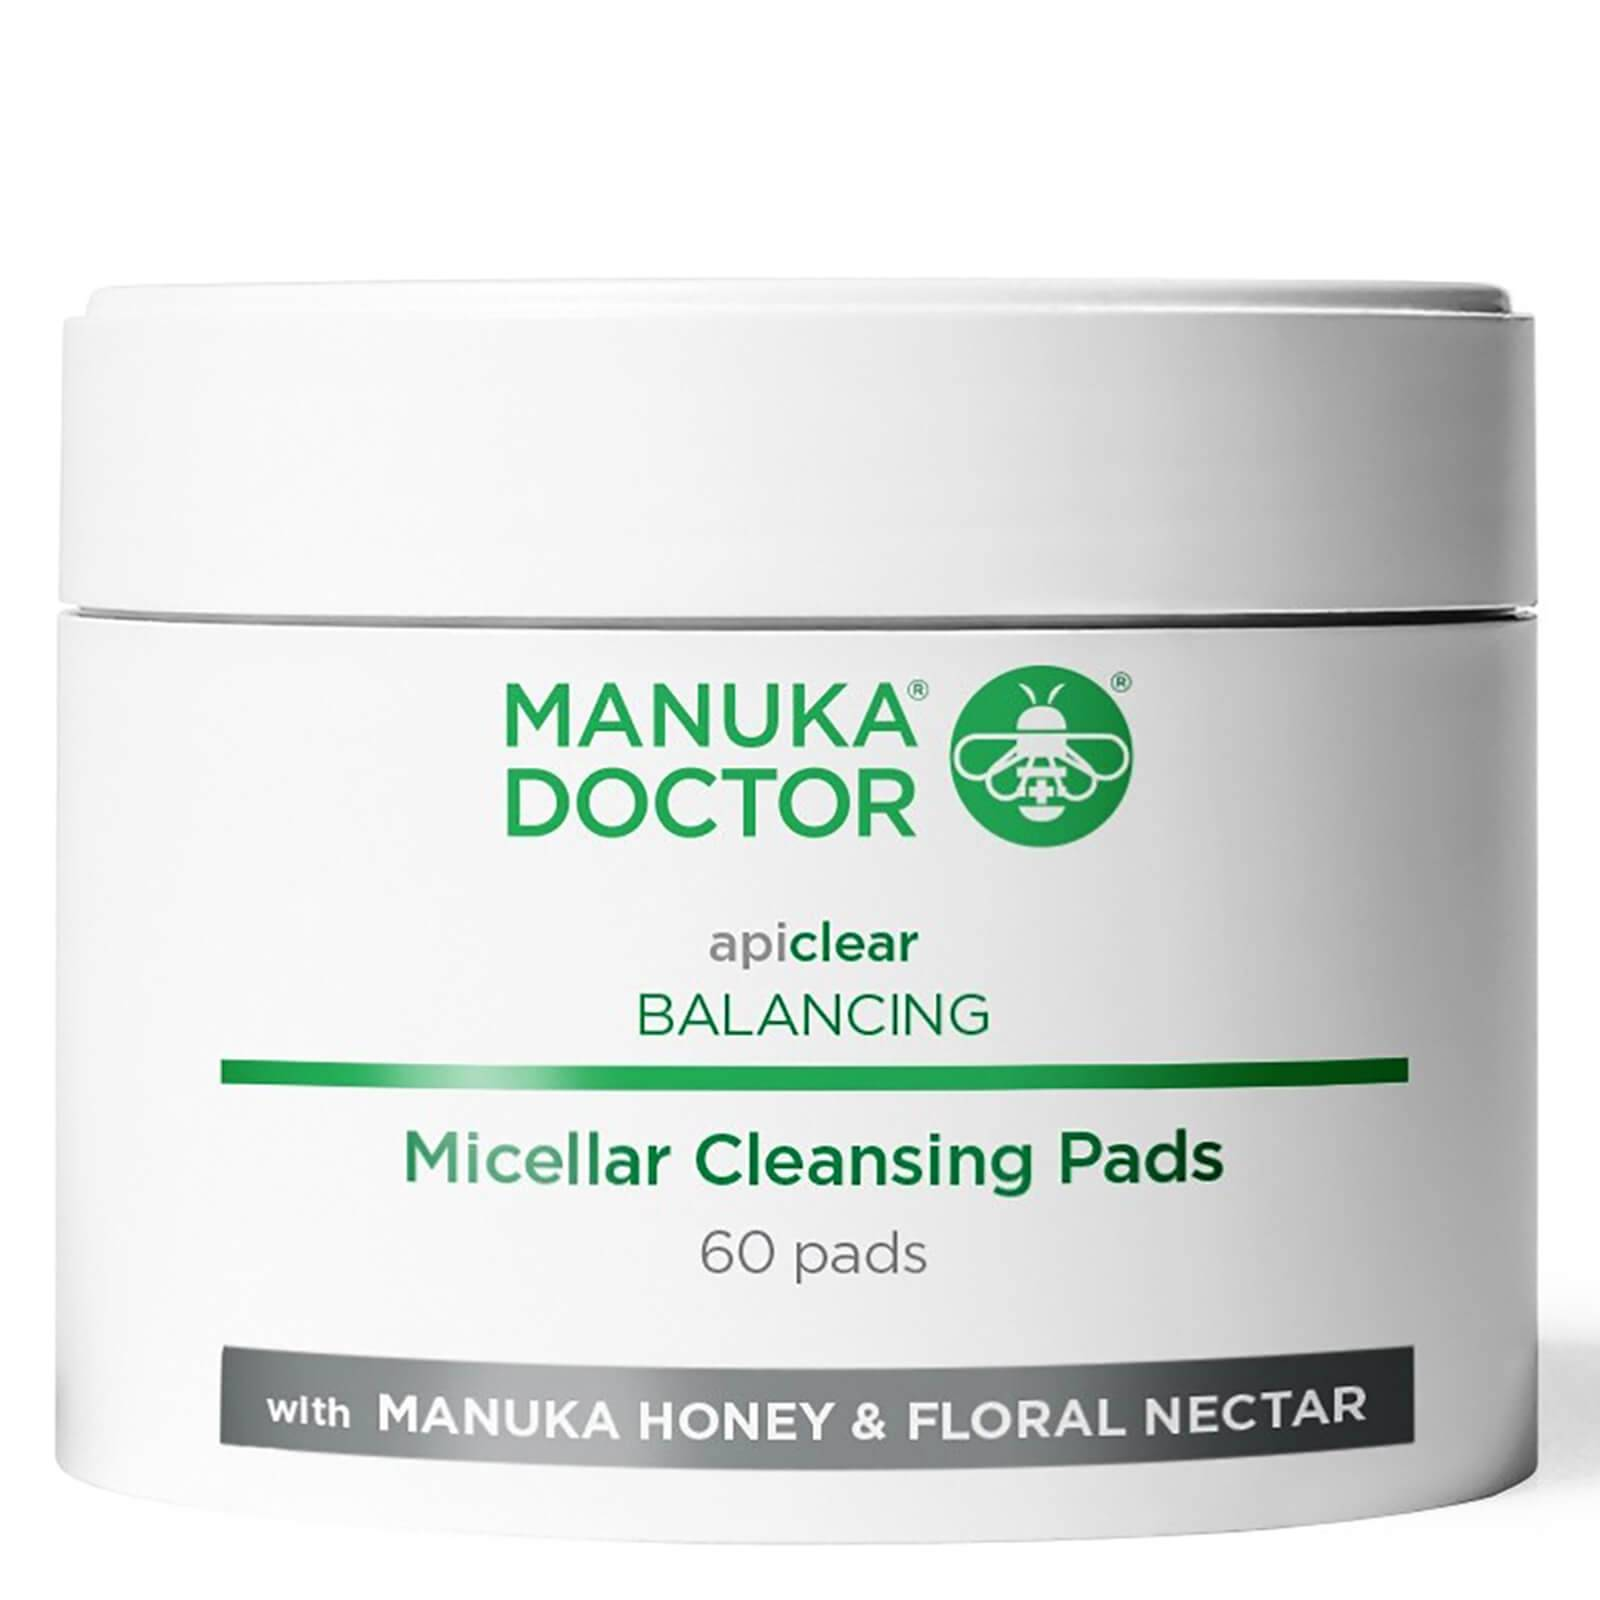 Manuka Doctor Disques Nettoyants Équilibrants Micellaires Apiclear Balancing Micellar Cleansing Pads Manuka Doctor (60 disques)